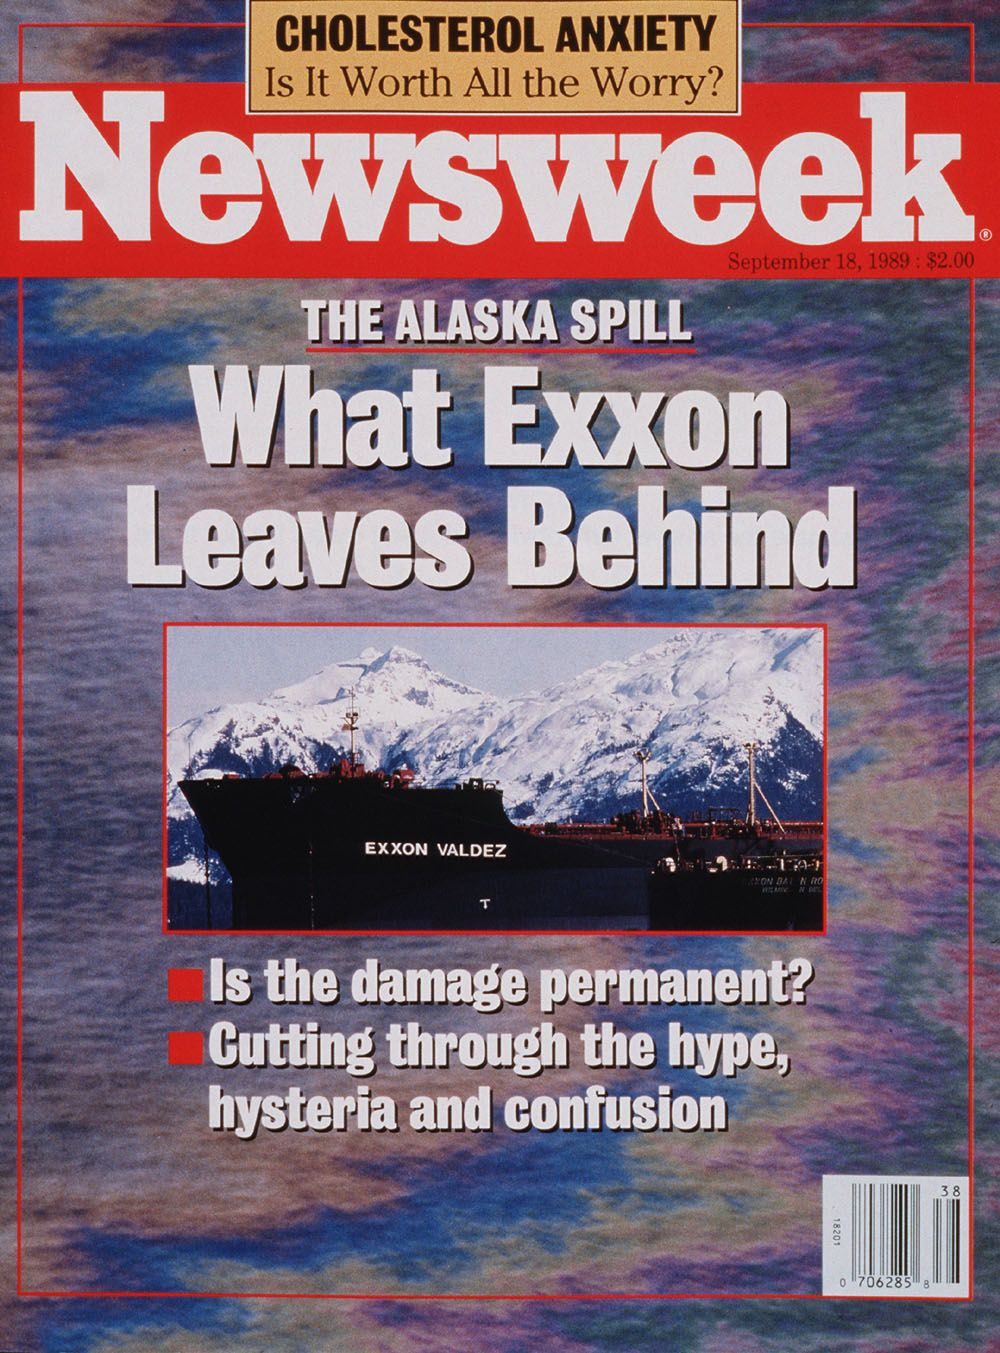 an introduction to the exxon valdez incident The exxon valdez spill was one of the largest spills ever along the us coast it led to significant institutional and regulatory changes, including the oil pollution act of 1990 and the creation of noaa's damage assessment remediation and restoration program.